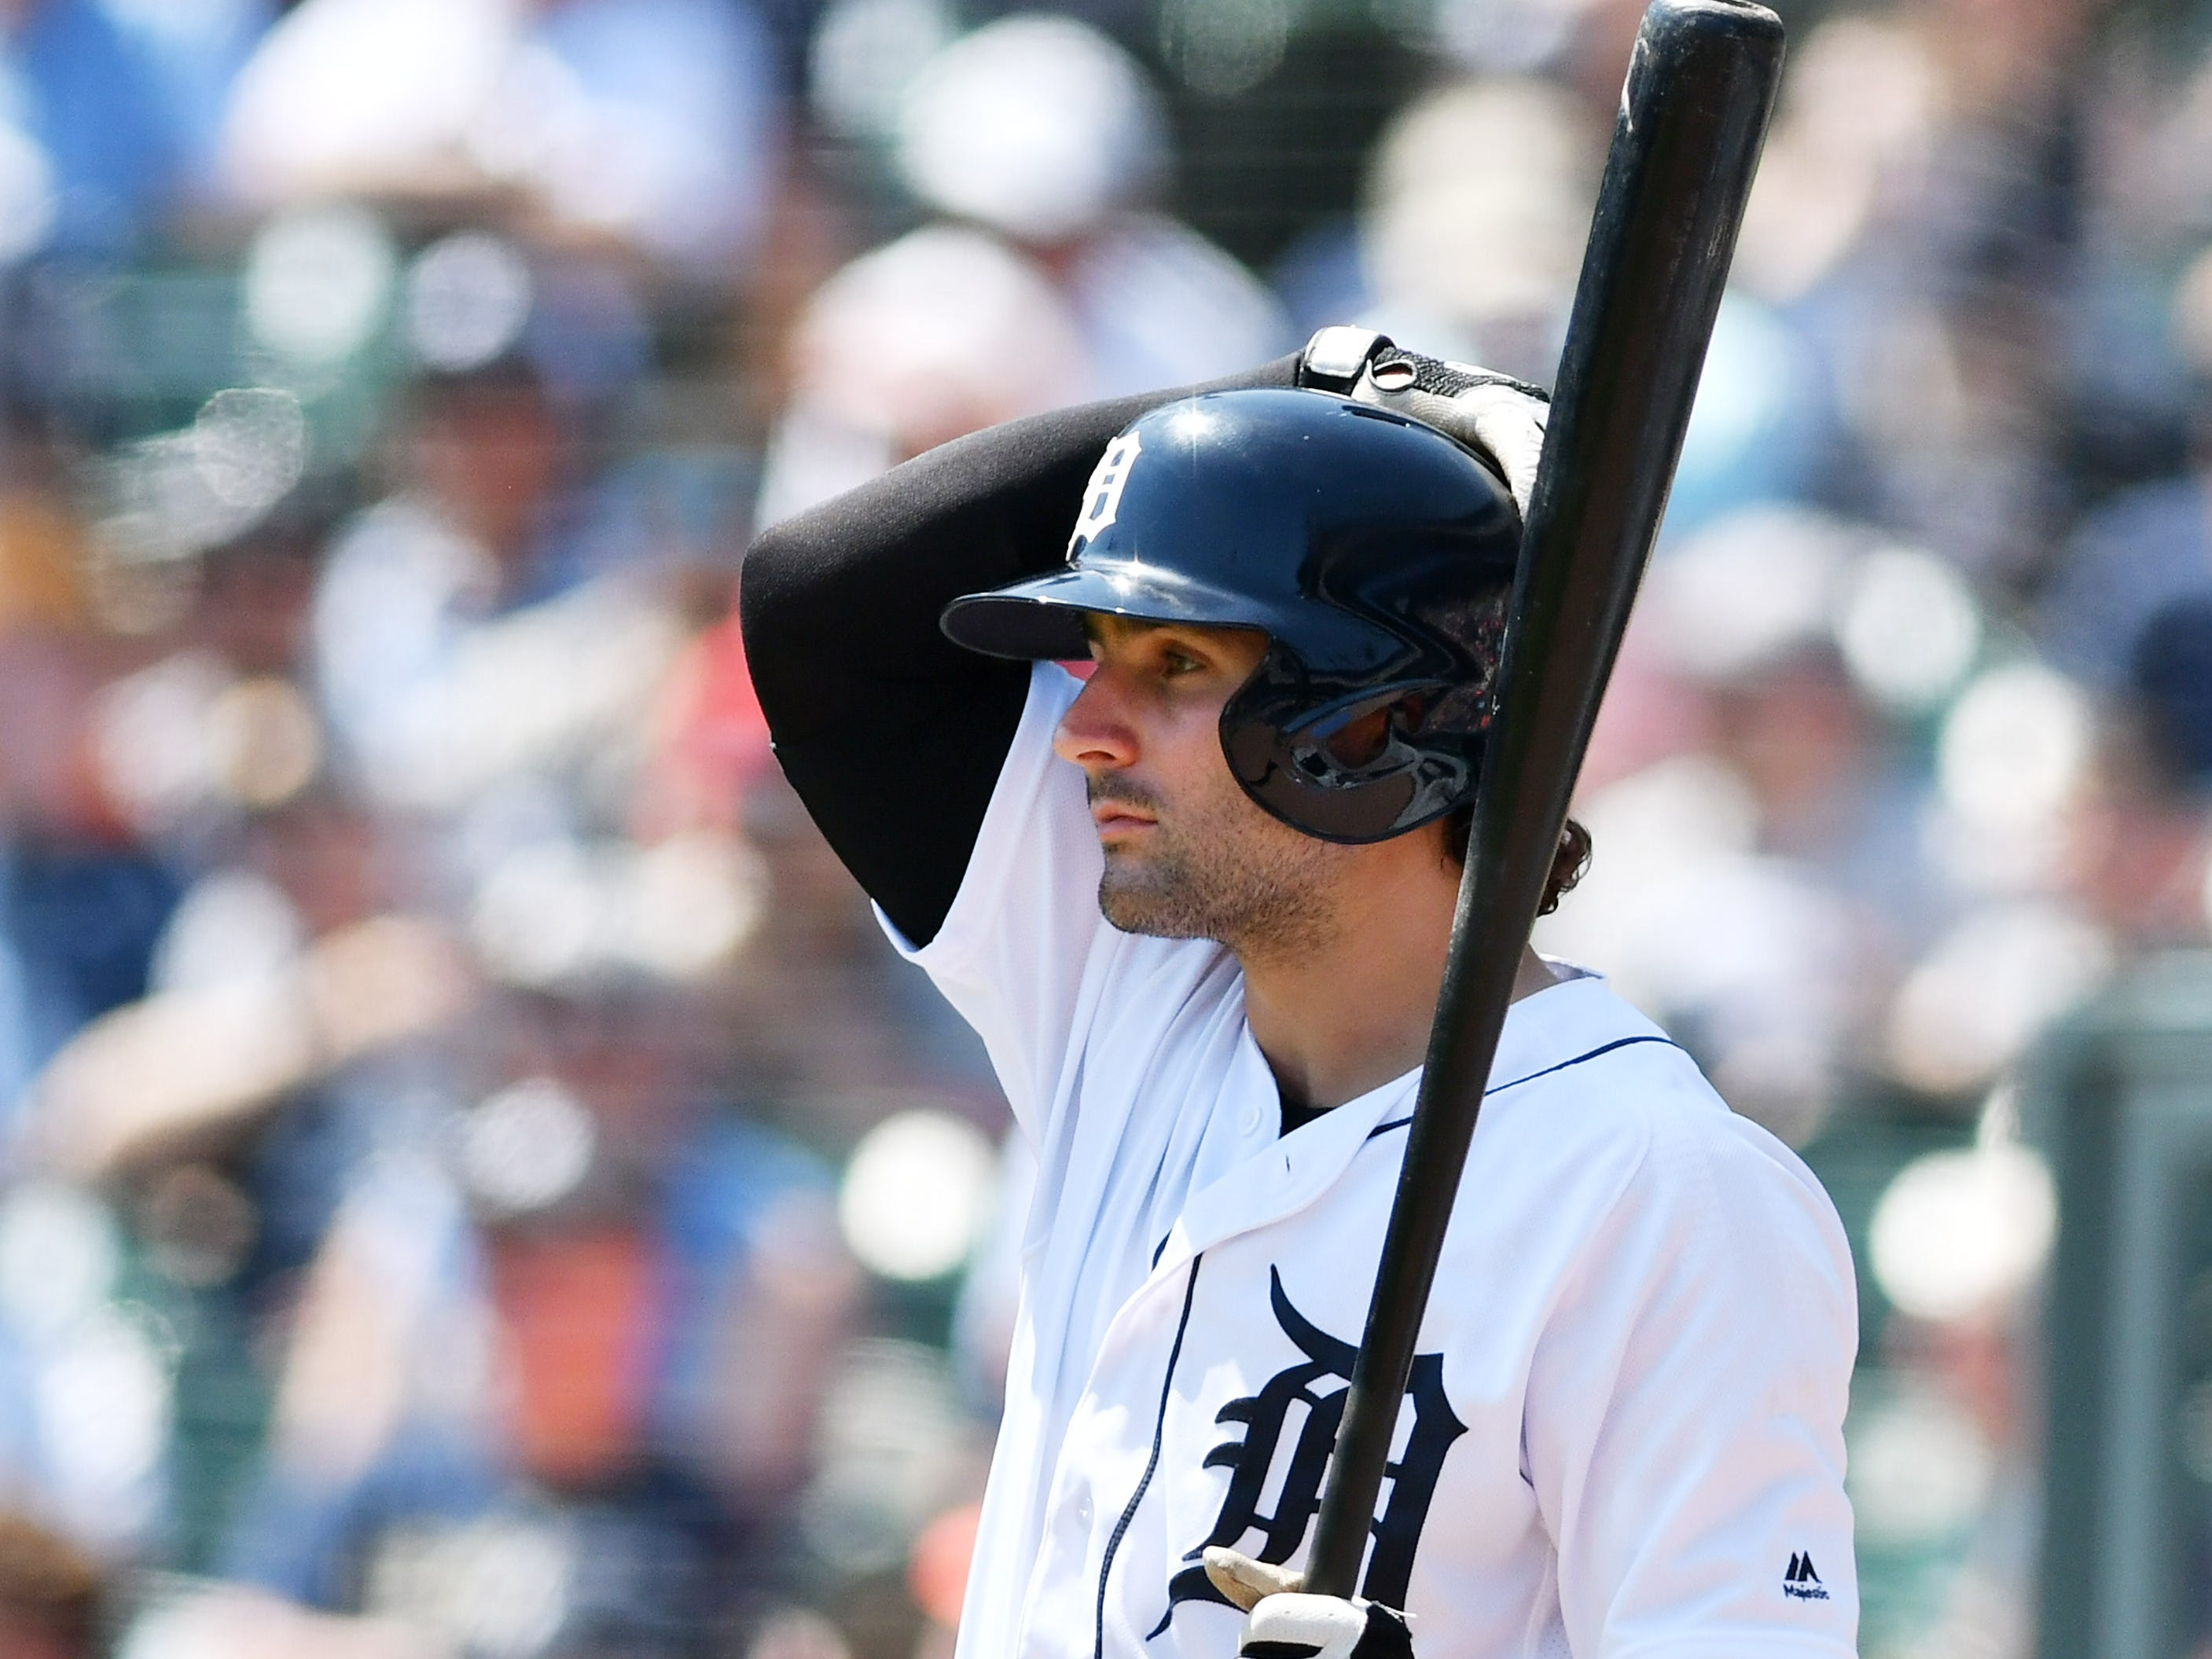 Pete Kozma, shortstop: He is a text-book solid defensive shortstop. He was an excellent choice to serve as a veteran mentor at Toledo and, after Jose Iglesias was injured, solidified the Tigers' infield in September.